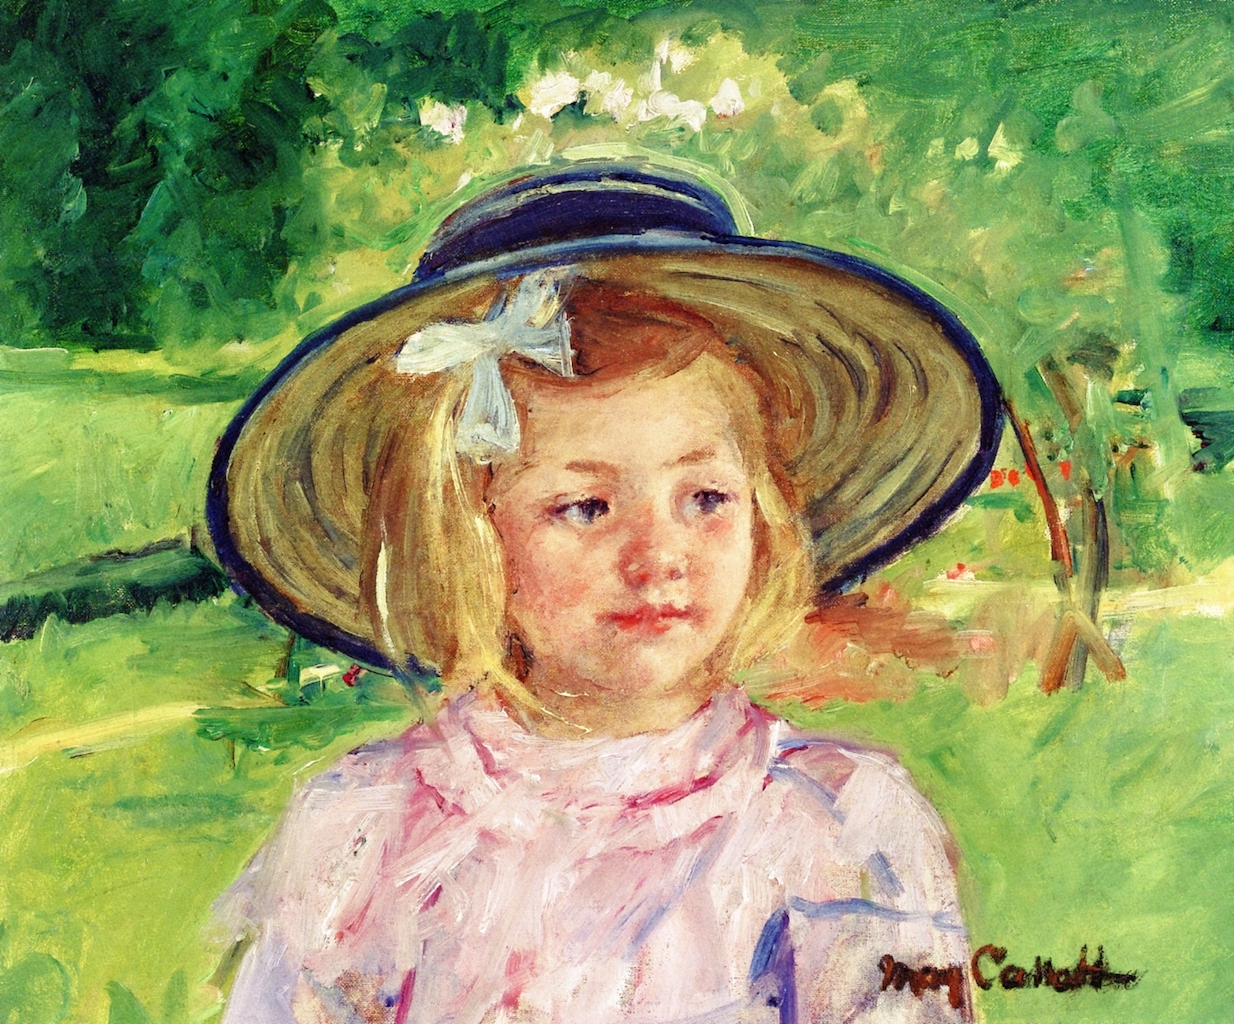 Mary Cassatt - Little Girl in a Stiff, Round Hat, Looking to Right in a Sunny Garden 1909